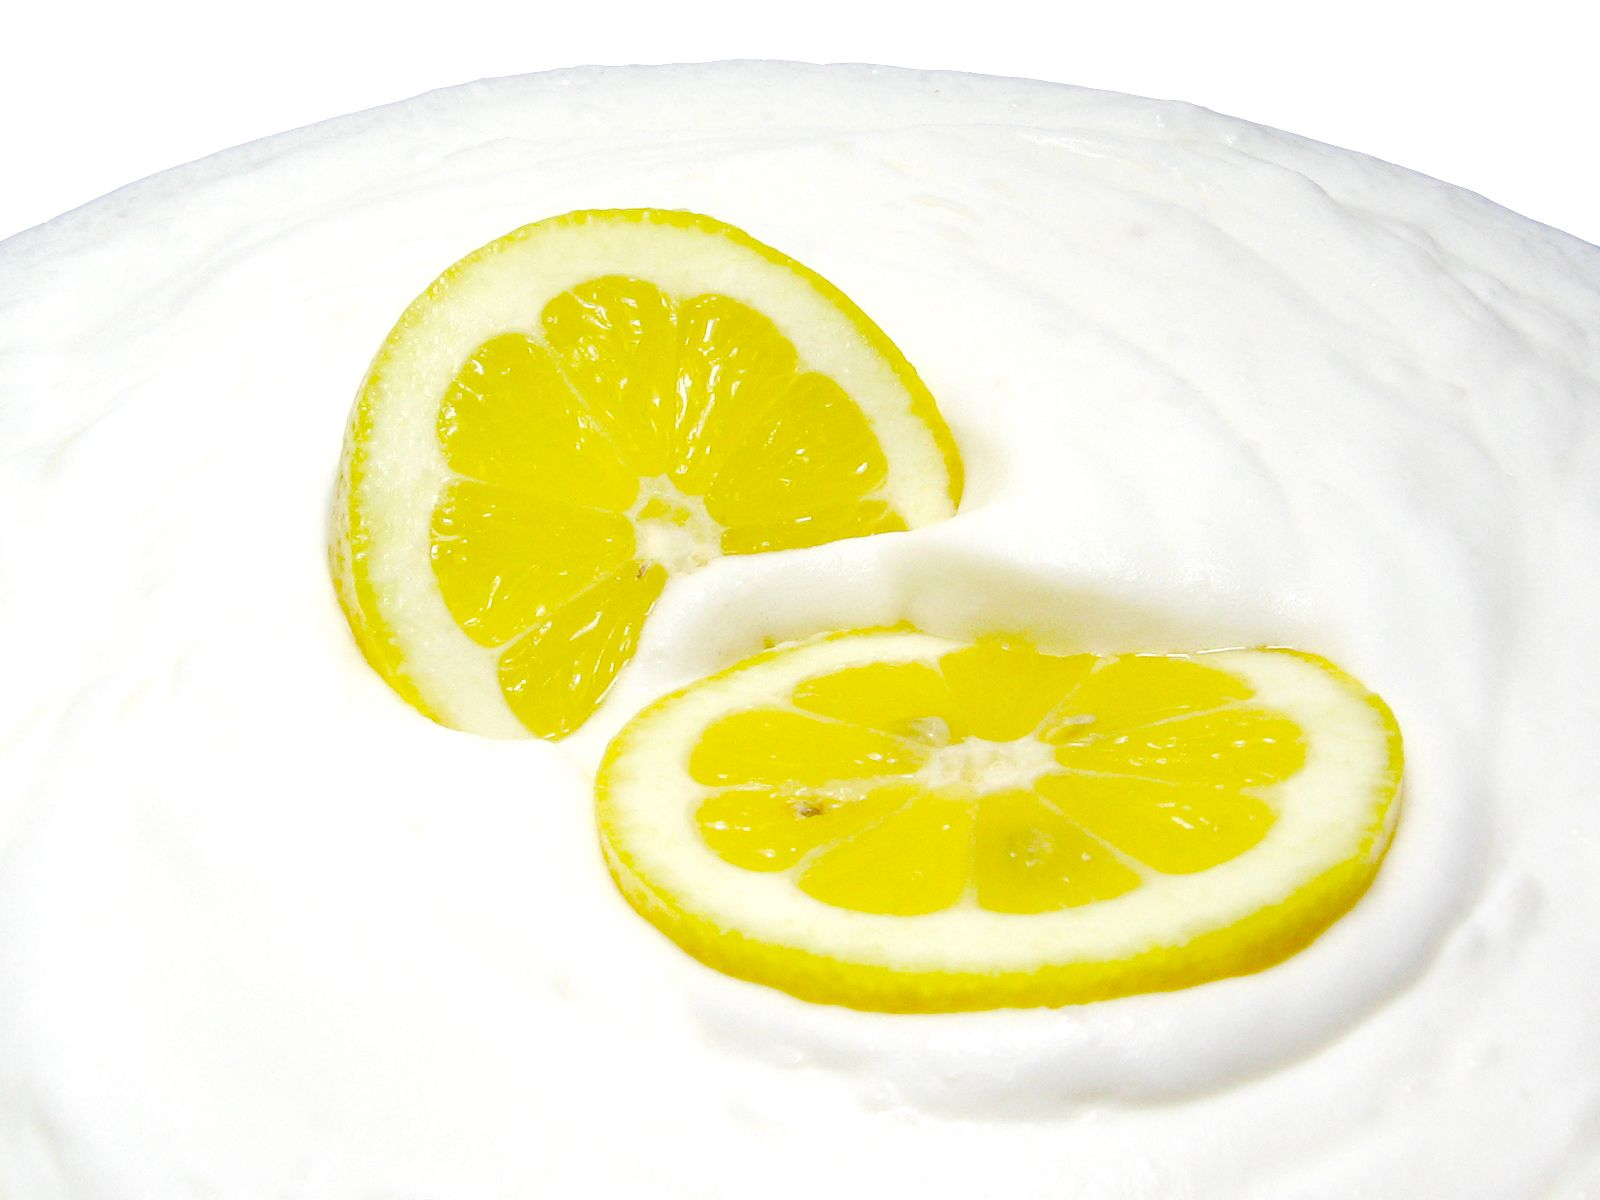 Take Lemon Juice And Curd To It Apply It To The Face This Is A Good  Homemade Facial Bleach Lemon Is A Natural Bleach When Curd Is Added It Acts  As